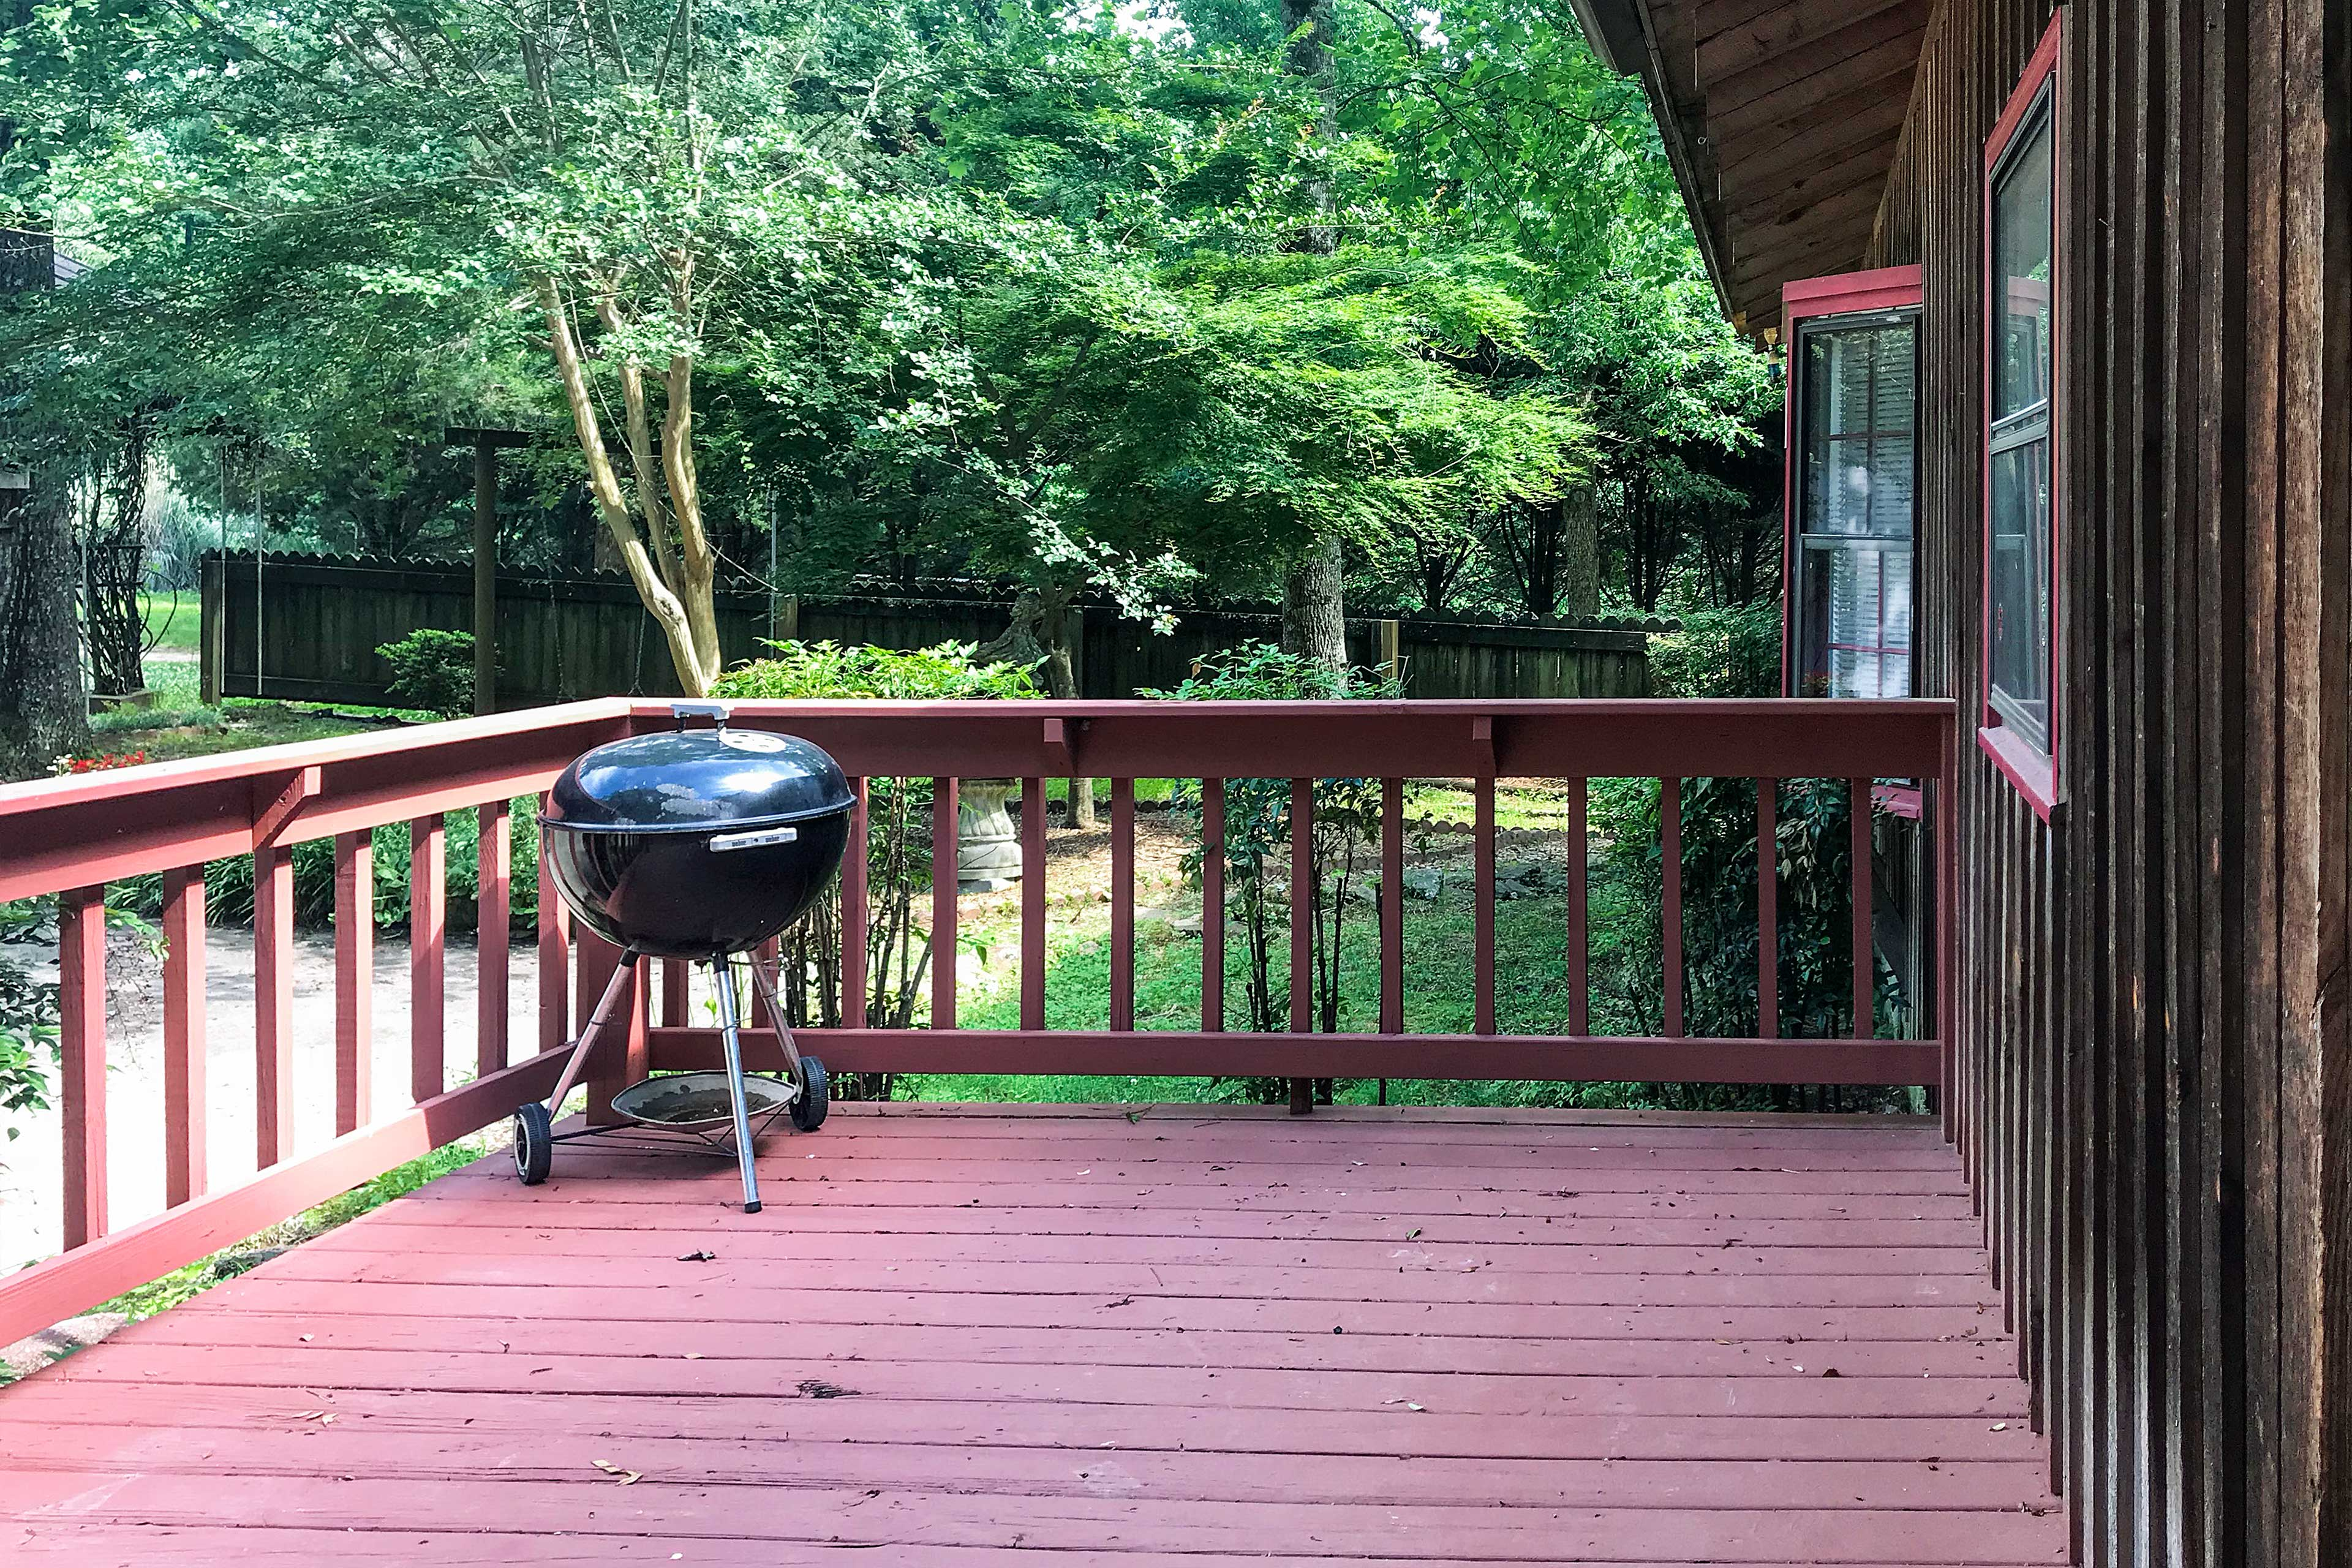 Whip up some burgers on the patio's gas grill!